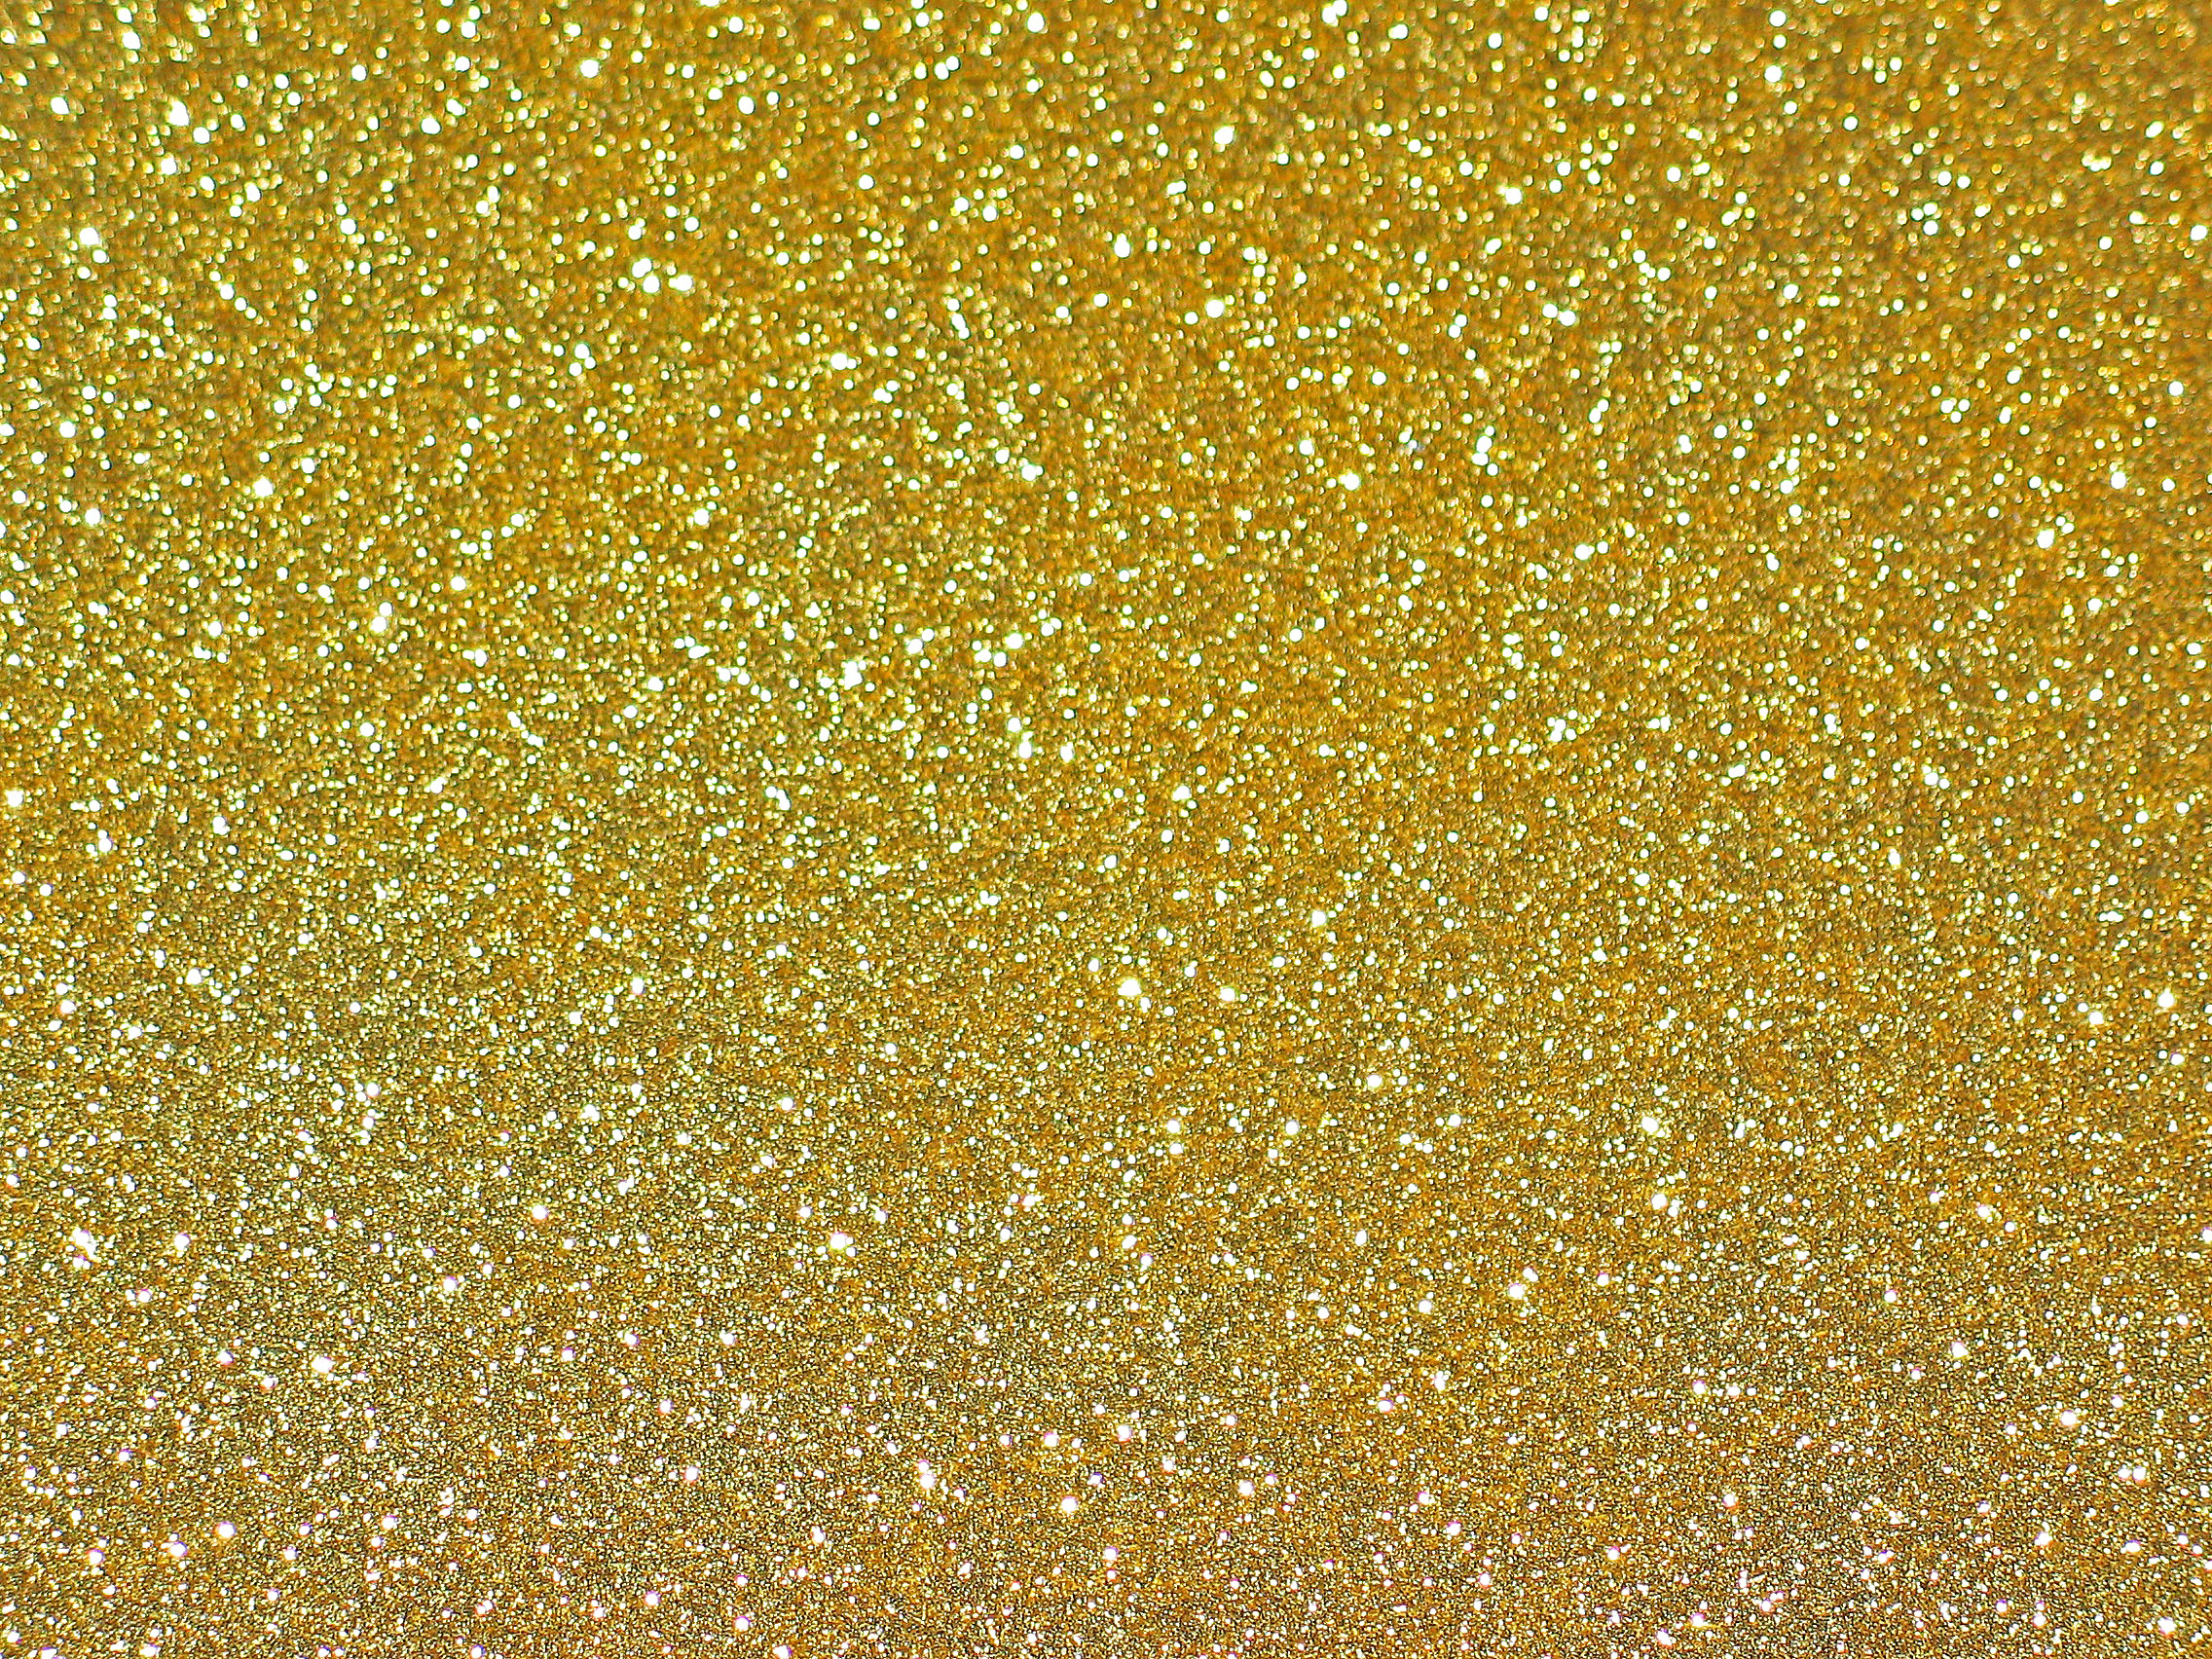 Gold background, bright, jewel, sparkle